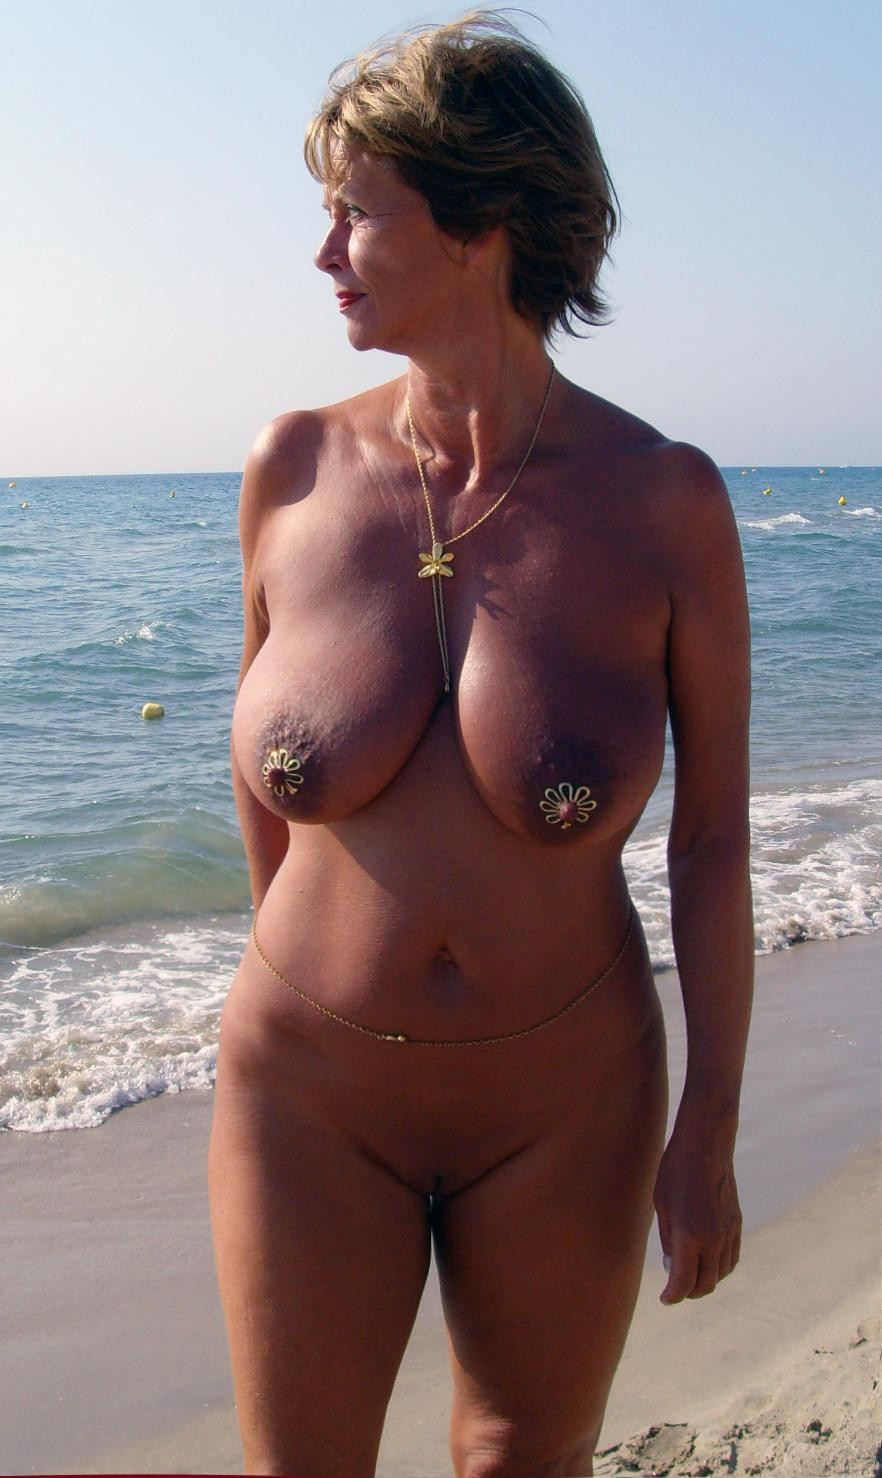 Shaved muture nude